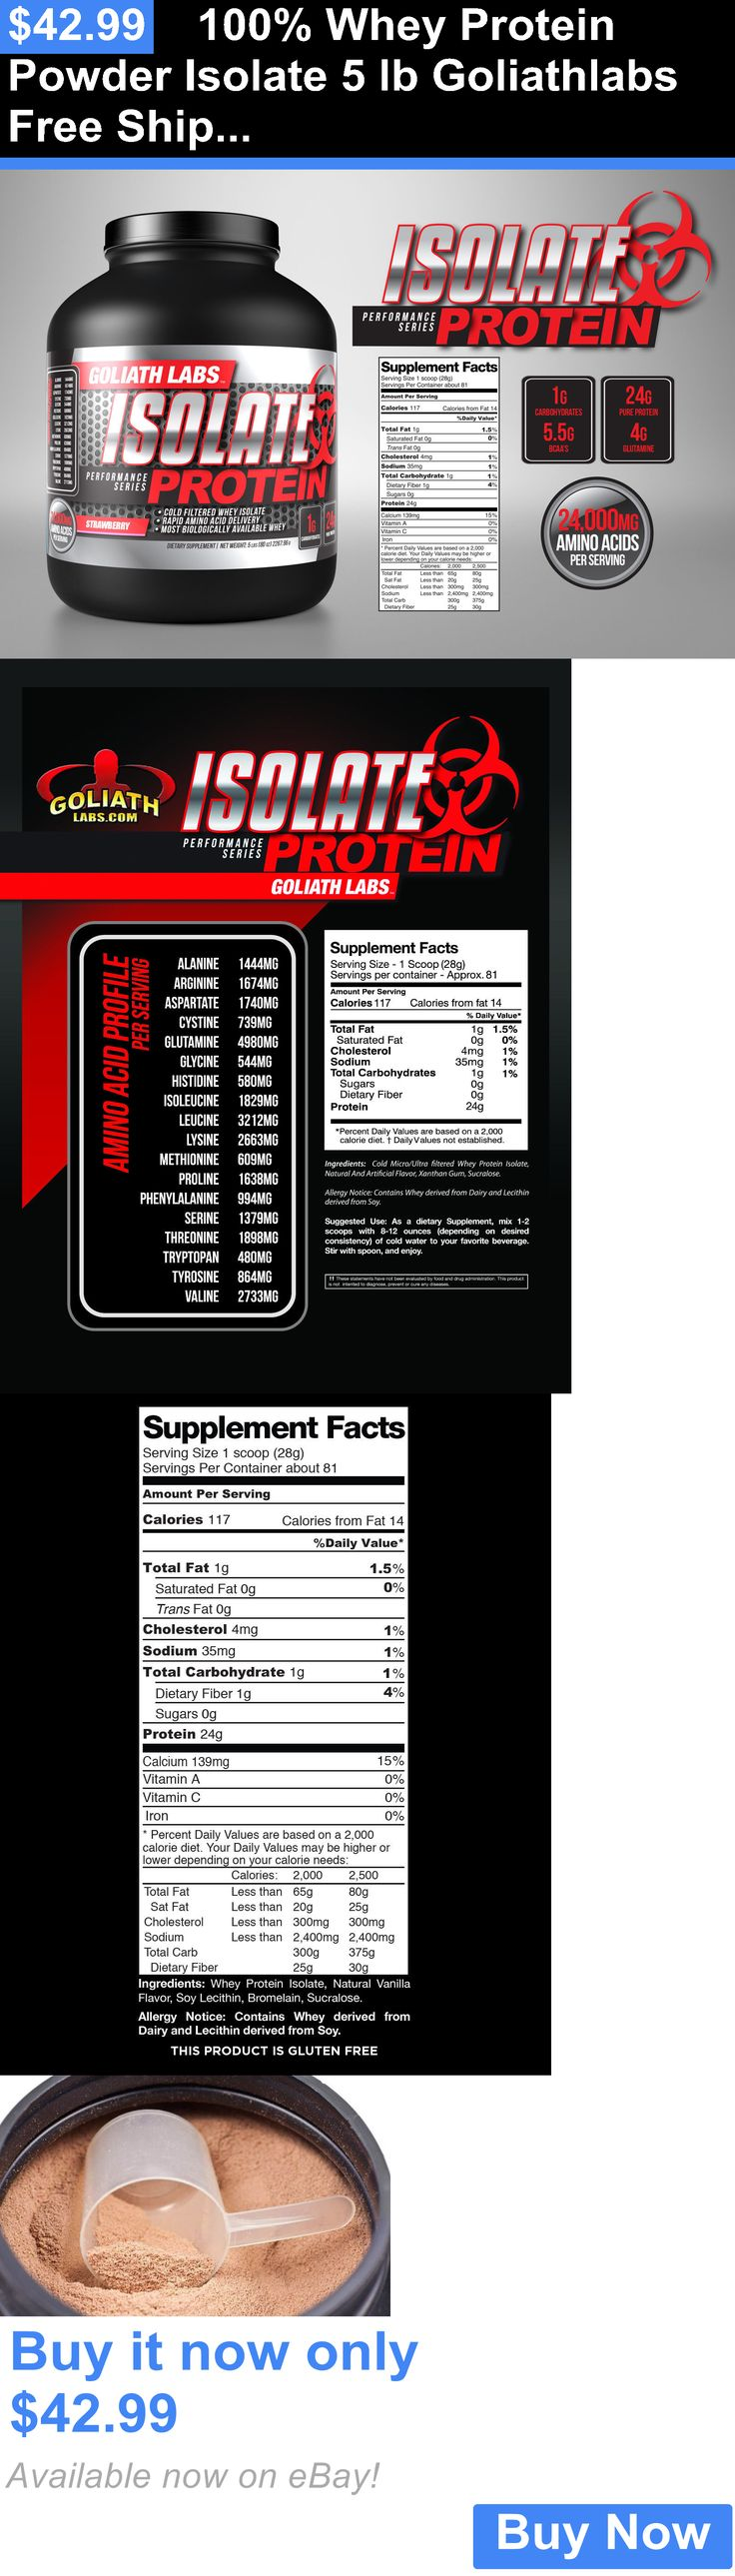 Protein Shakes and Bodybuilding: 100% Whey Protein Powder Isolate 5 Lb Goliathlabs Free Shipping BUY IT NOW ONLY: $42.99